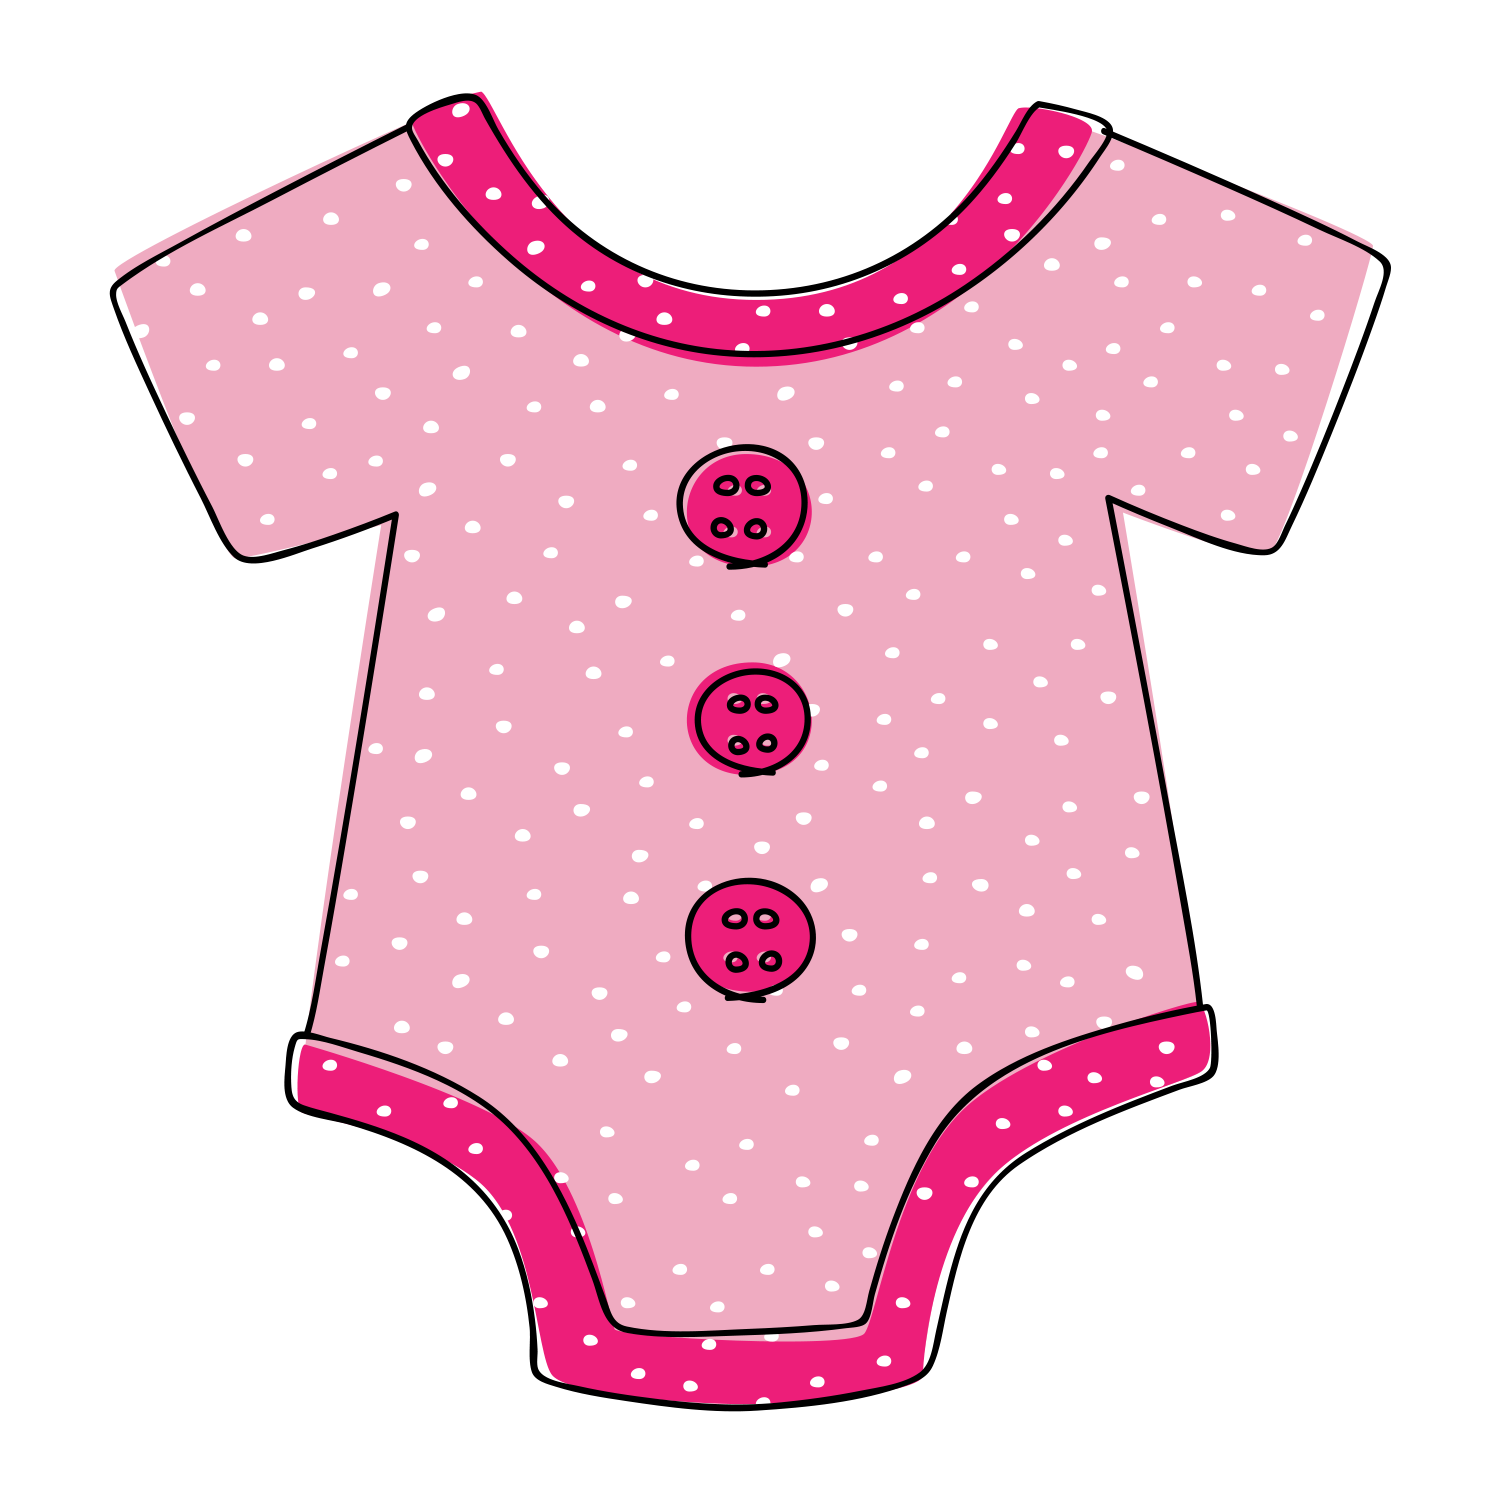 Free Downloadable Baby Onesie Clipart.